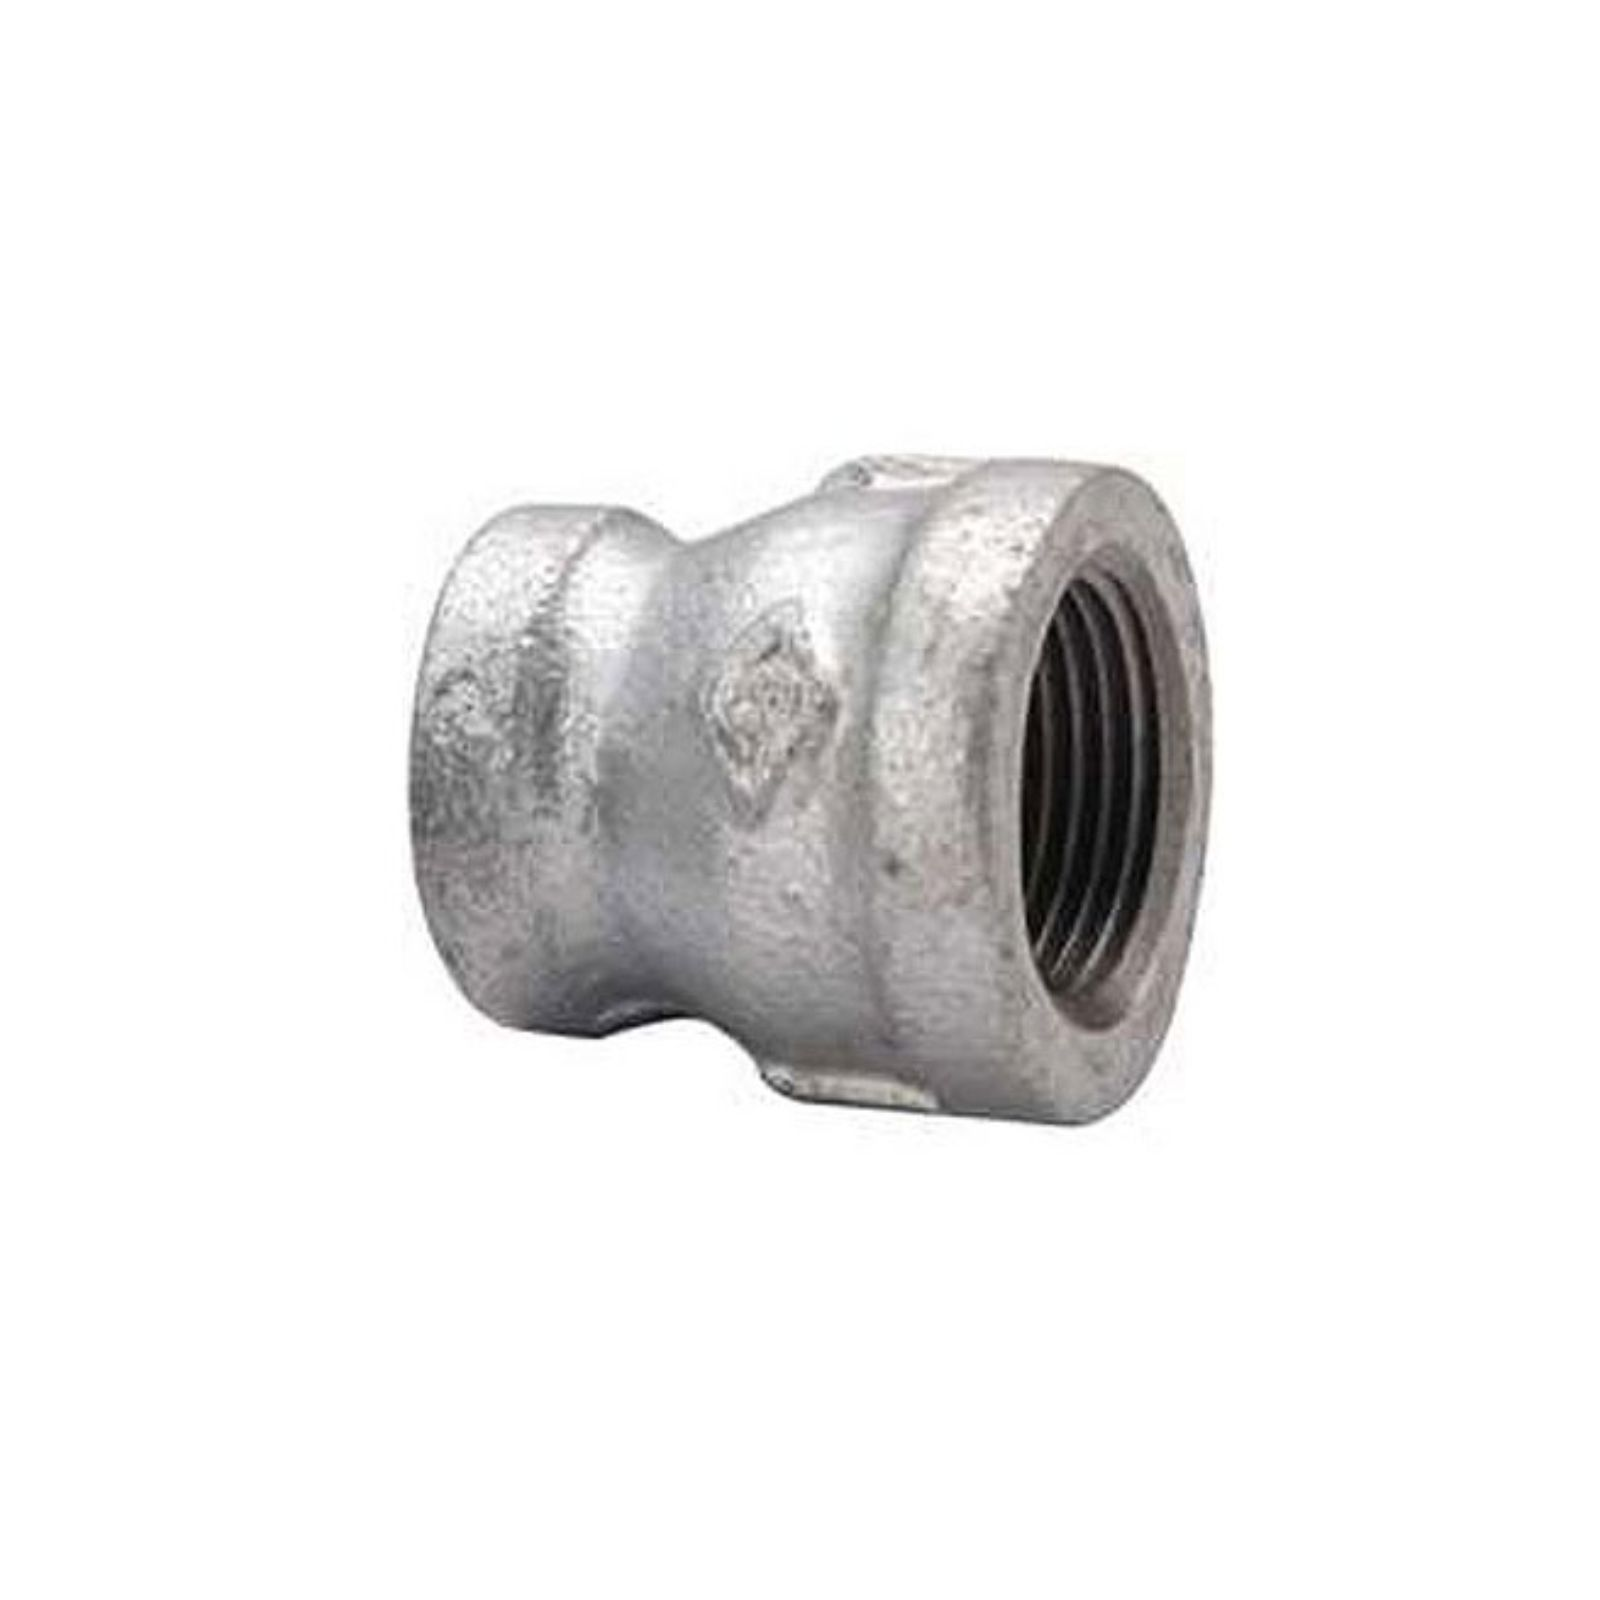 "Southland 511-343 - Galvanized Reducing Coupling, 3/4""I.D. X 1/2""I.D."